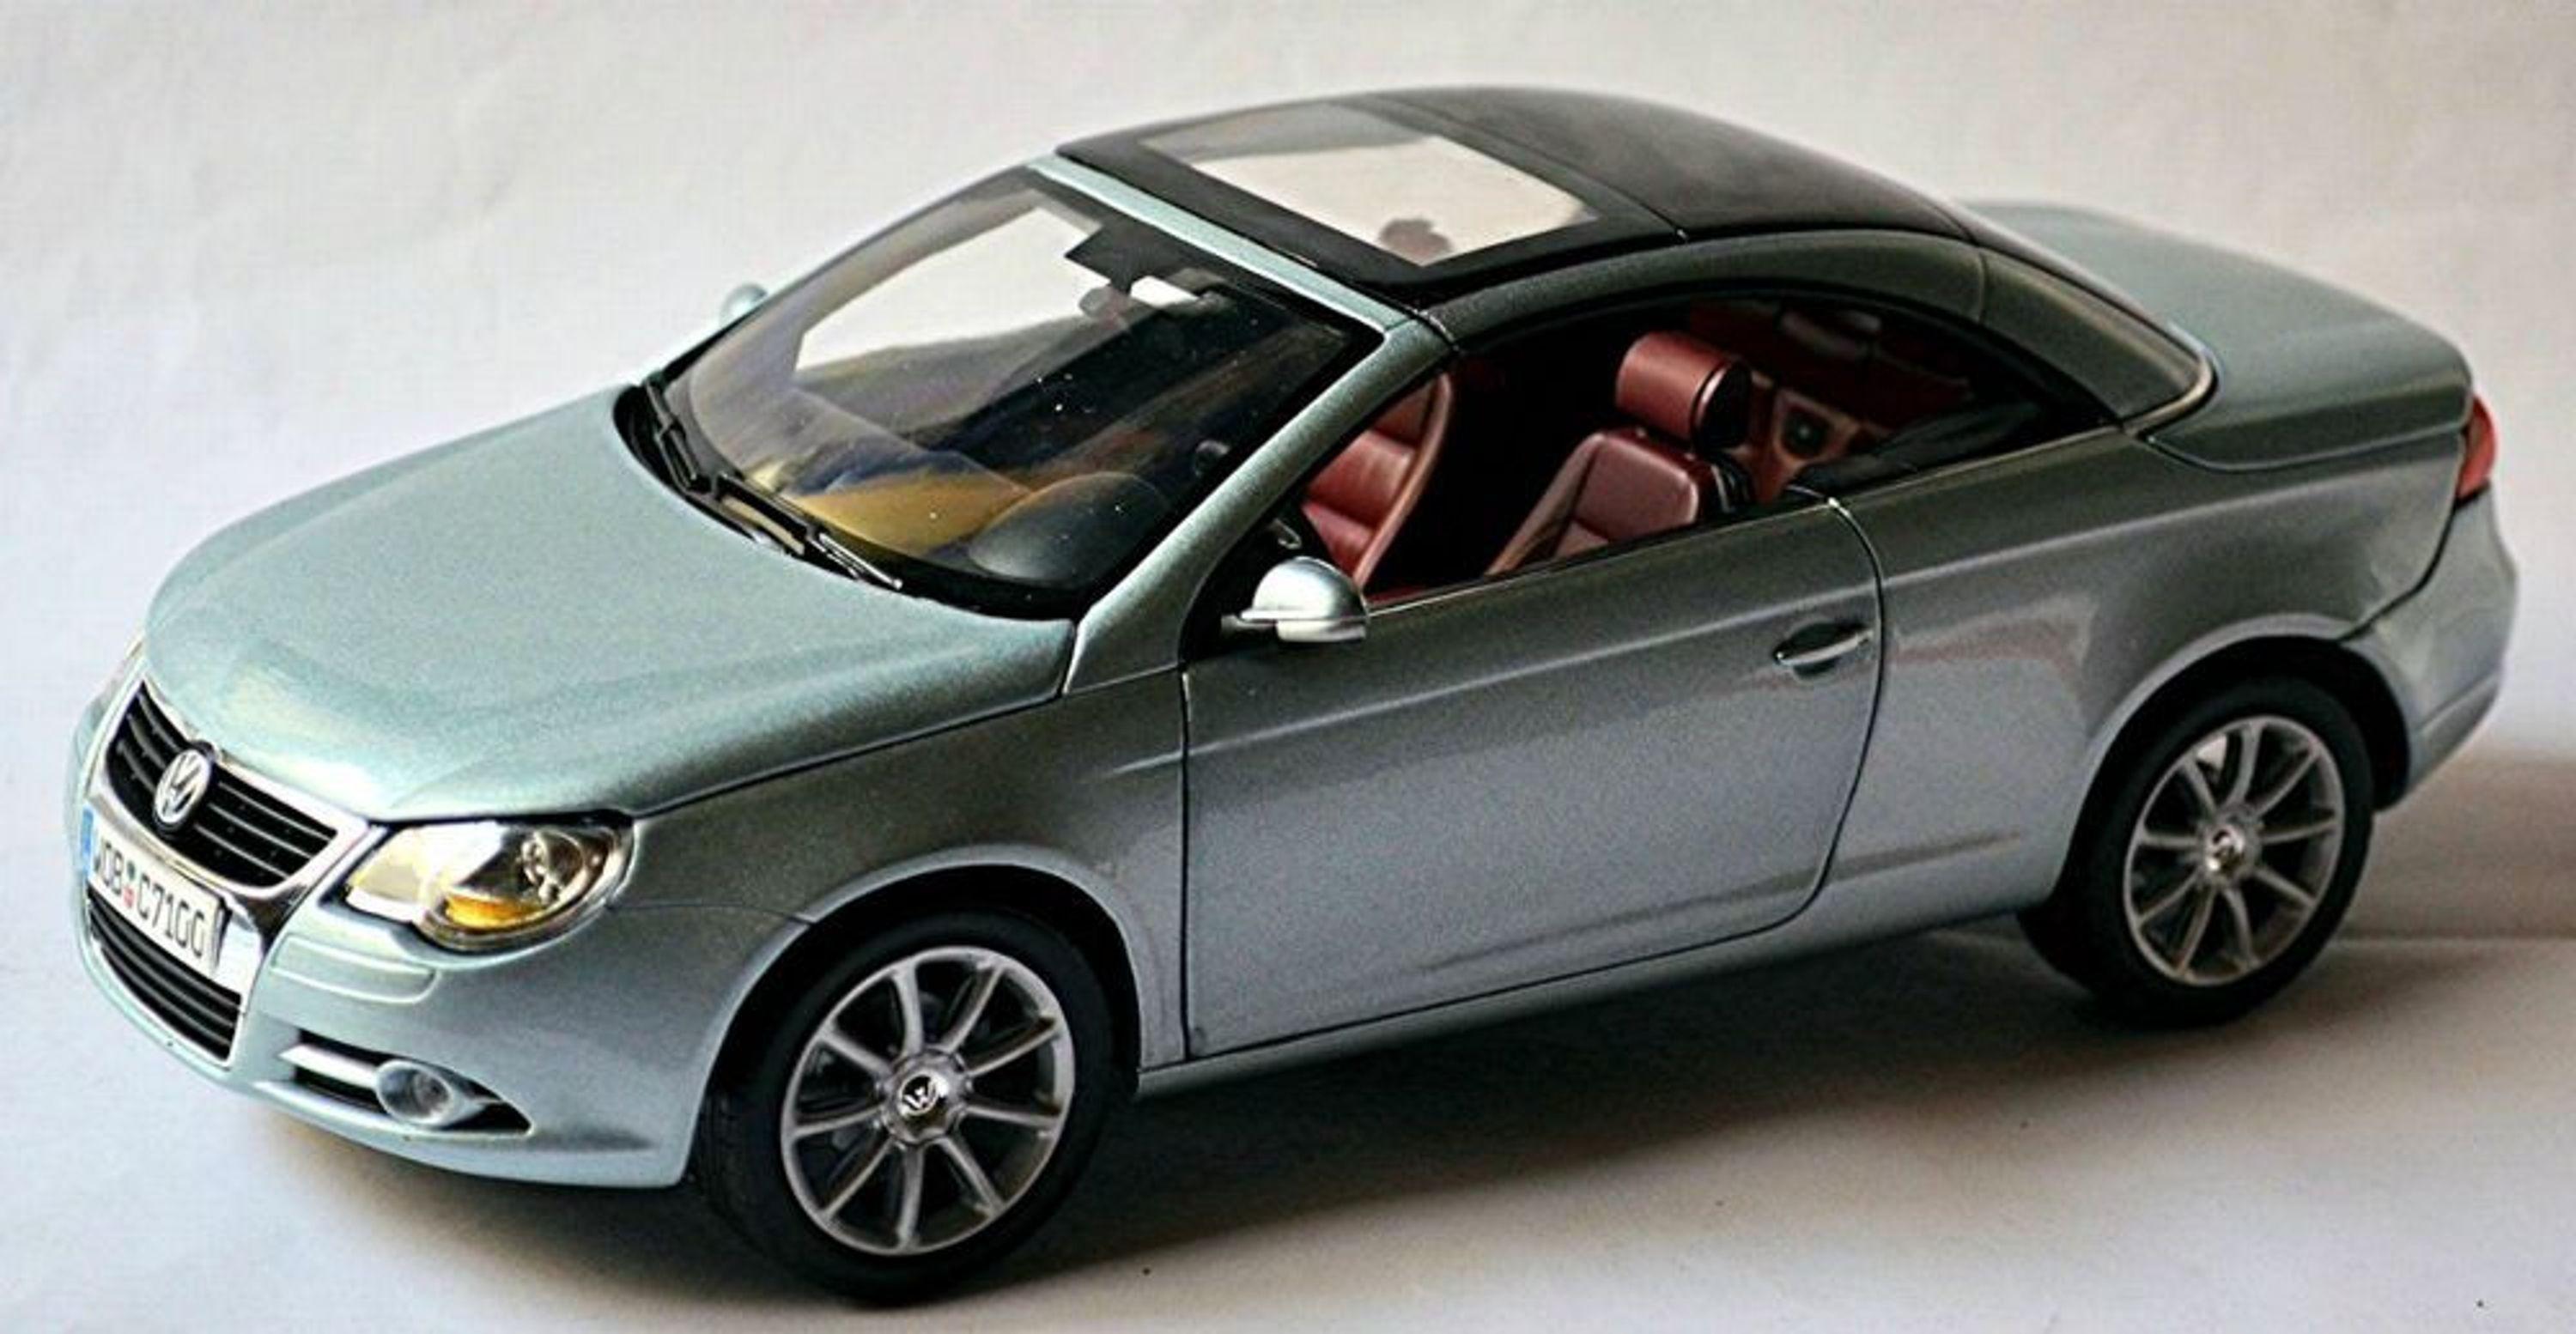 vw volkswagen eos cabrio coupe 2006 11 silber silver metallic 1 18 norev kaufen bei. Black Bedroom Furniture Sets. Home Design Ideas